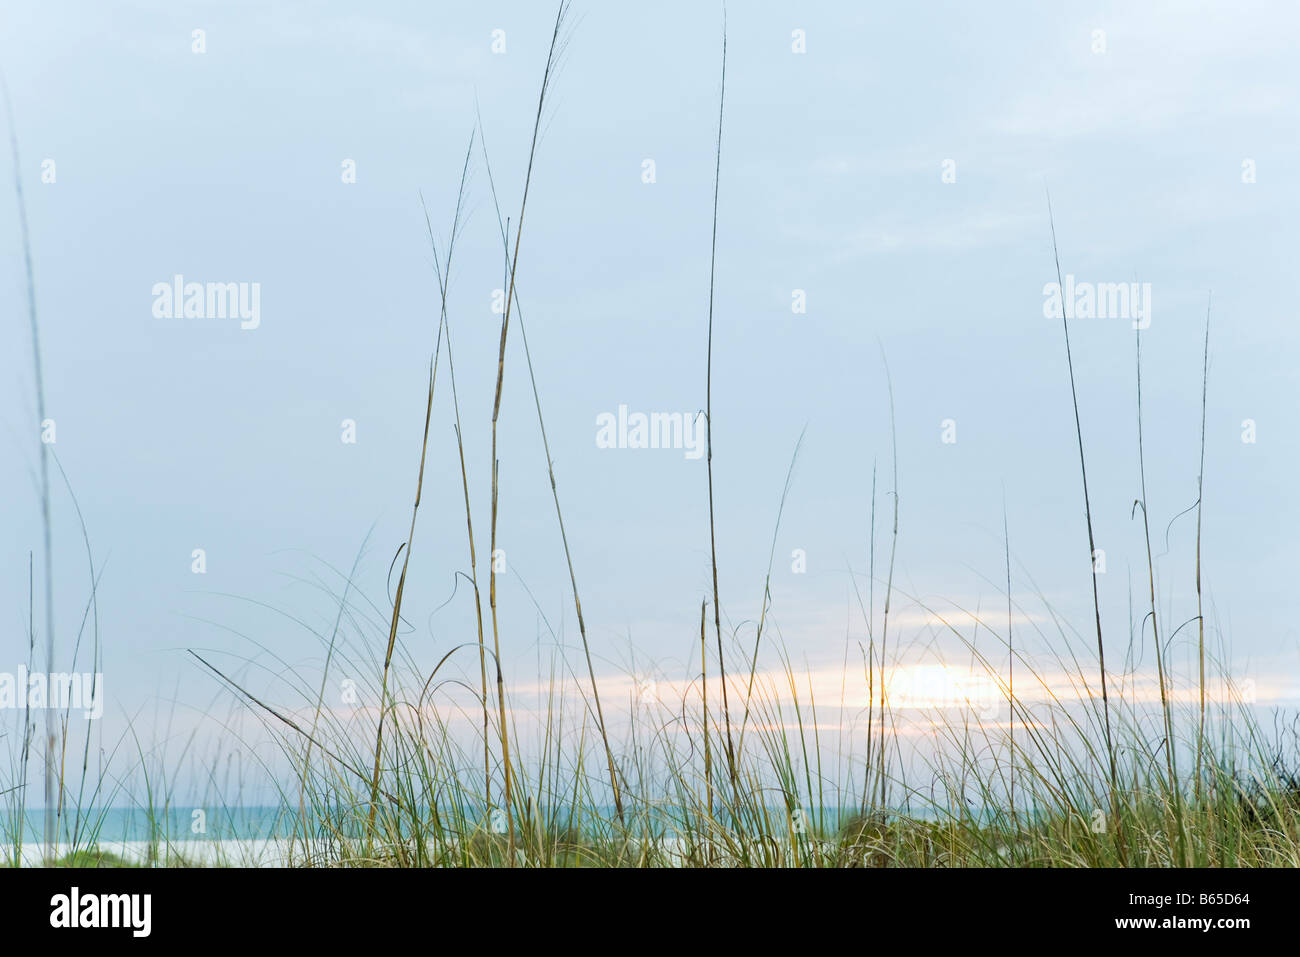 Beach sunset, tall dune grass in foreground - Stock Image